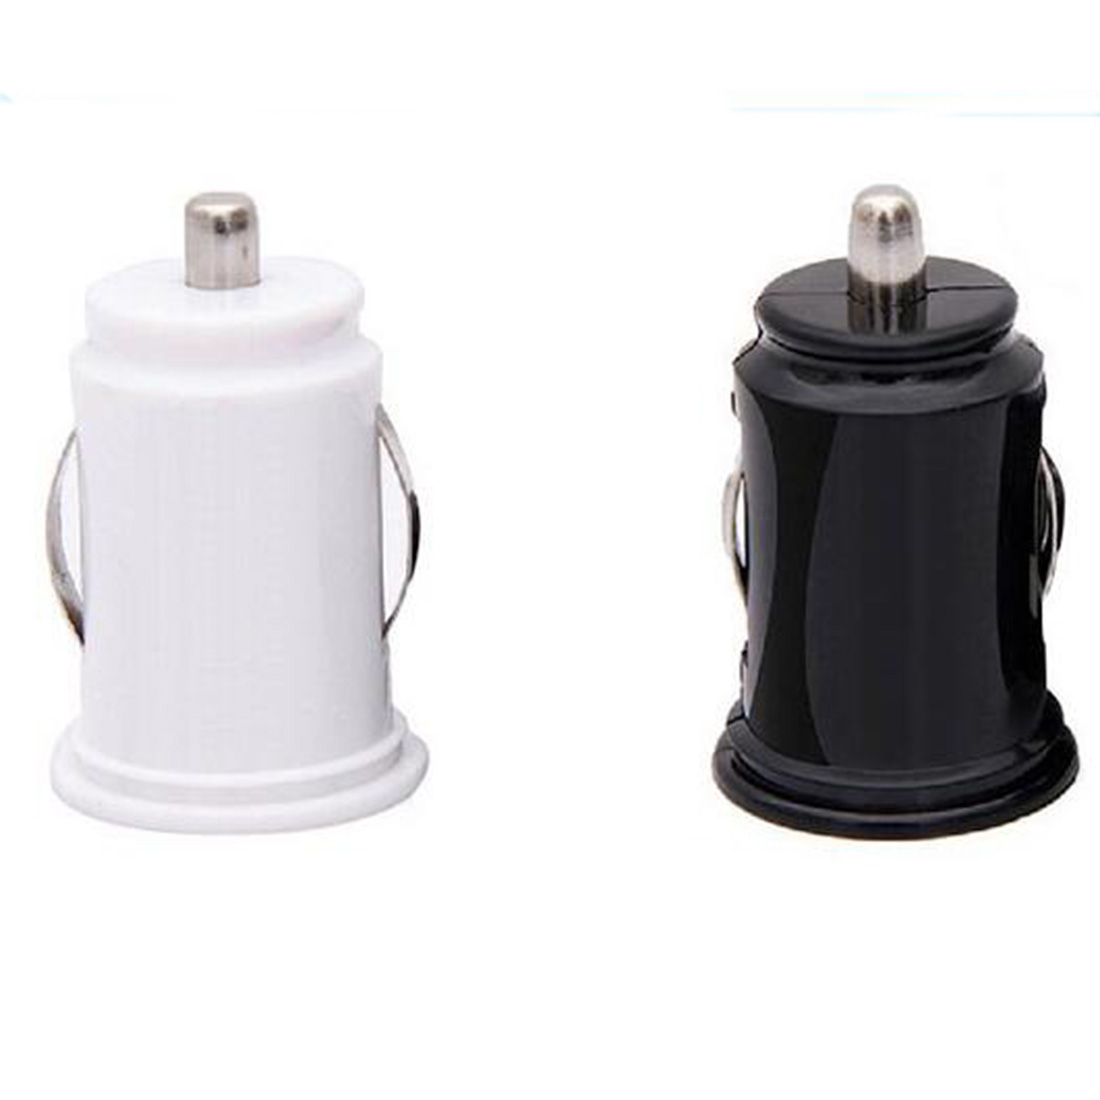 2.1A 5V Dual USB car charger 2 port Cigarette Lighter Adapter Charger USB Power Adapter For all smart phones Dewtreetali dual usb car cigarette lighter charger for ipad mini ipad 4 3 2 white